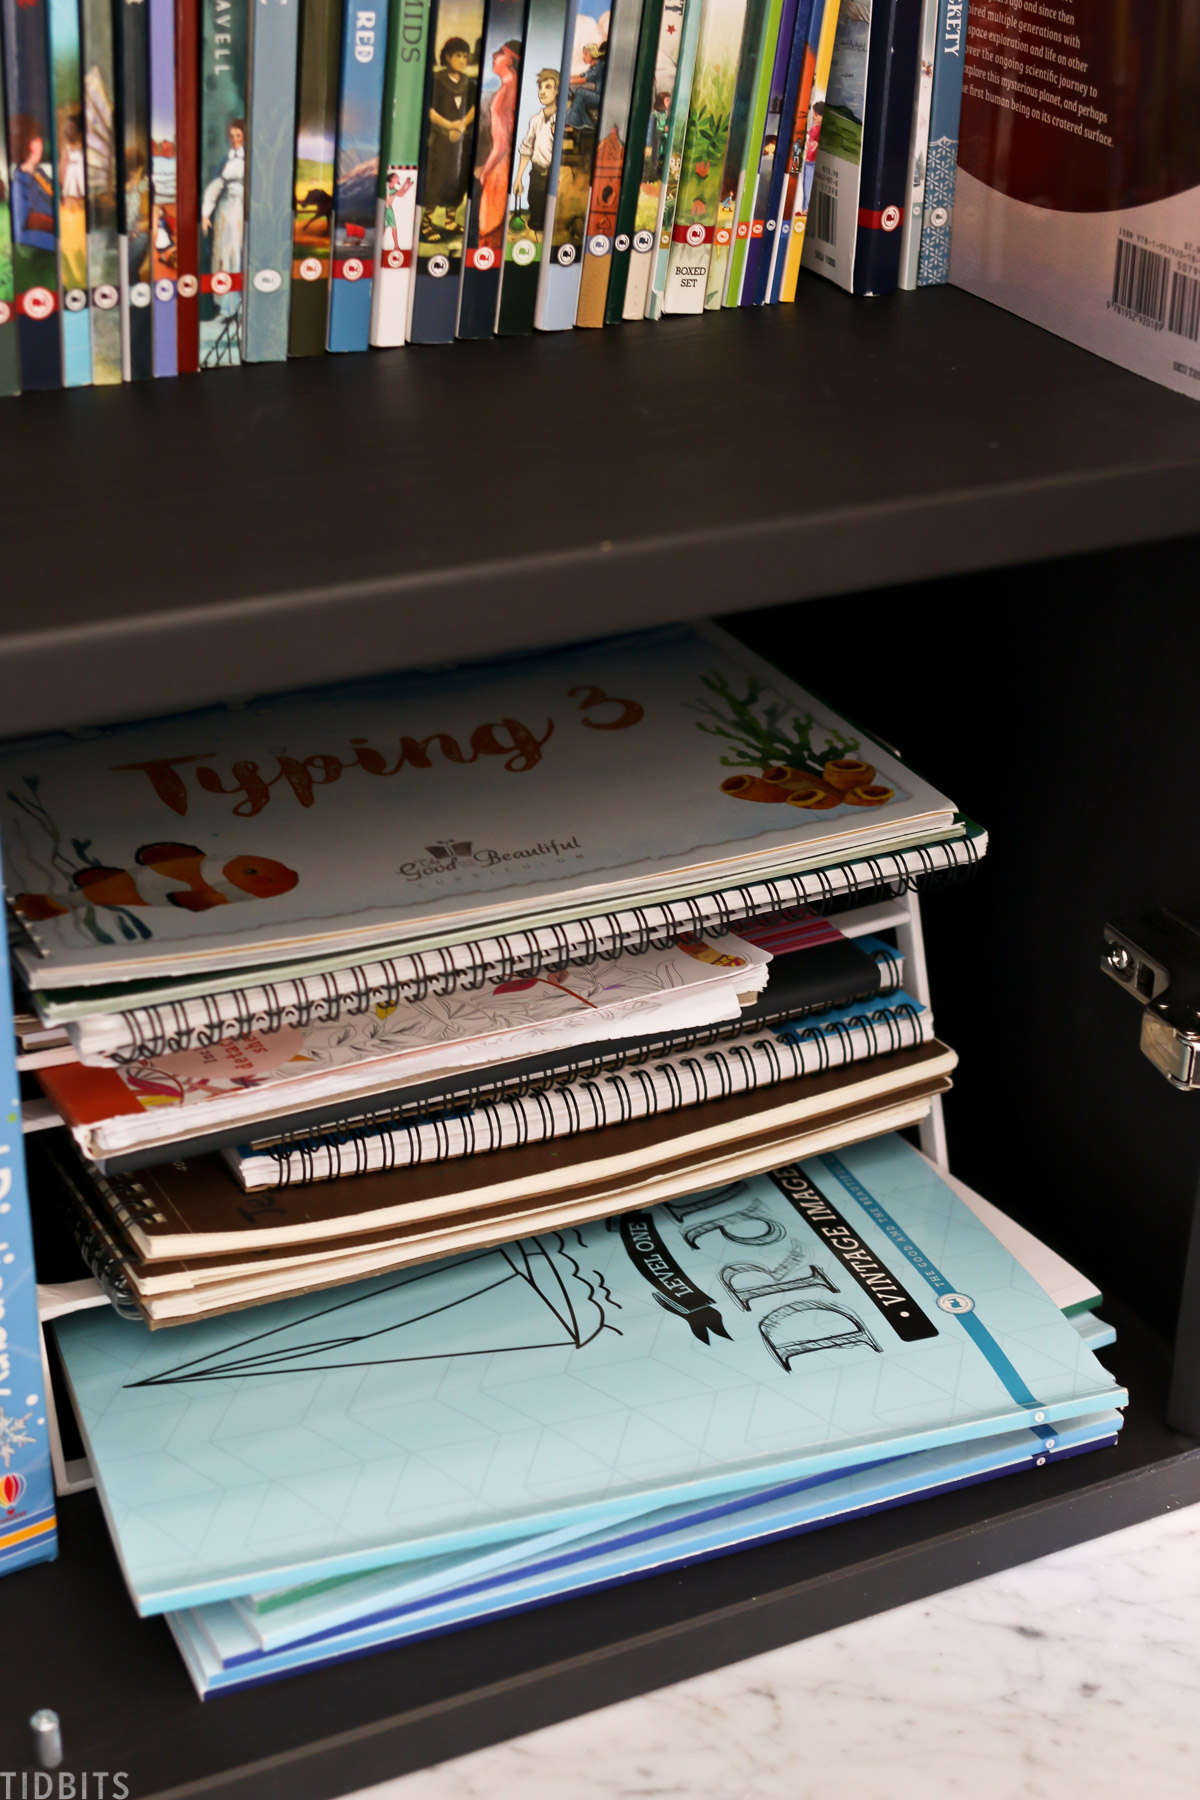 lower storage cabinet shows workbooks for typing and drawing are stored in a stacked file organizer